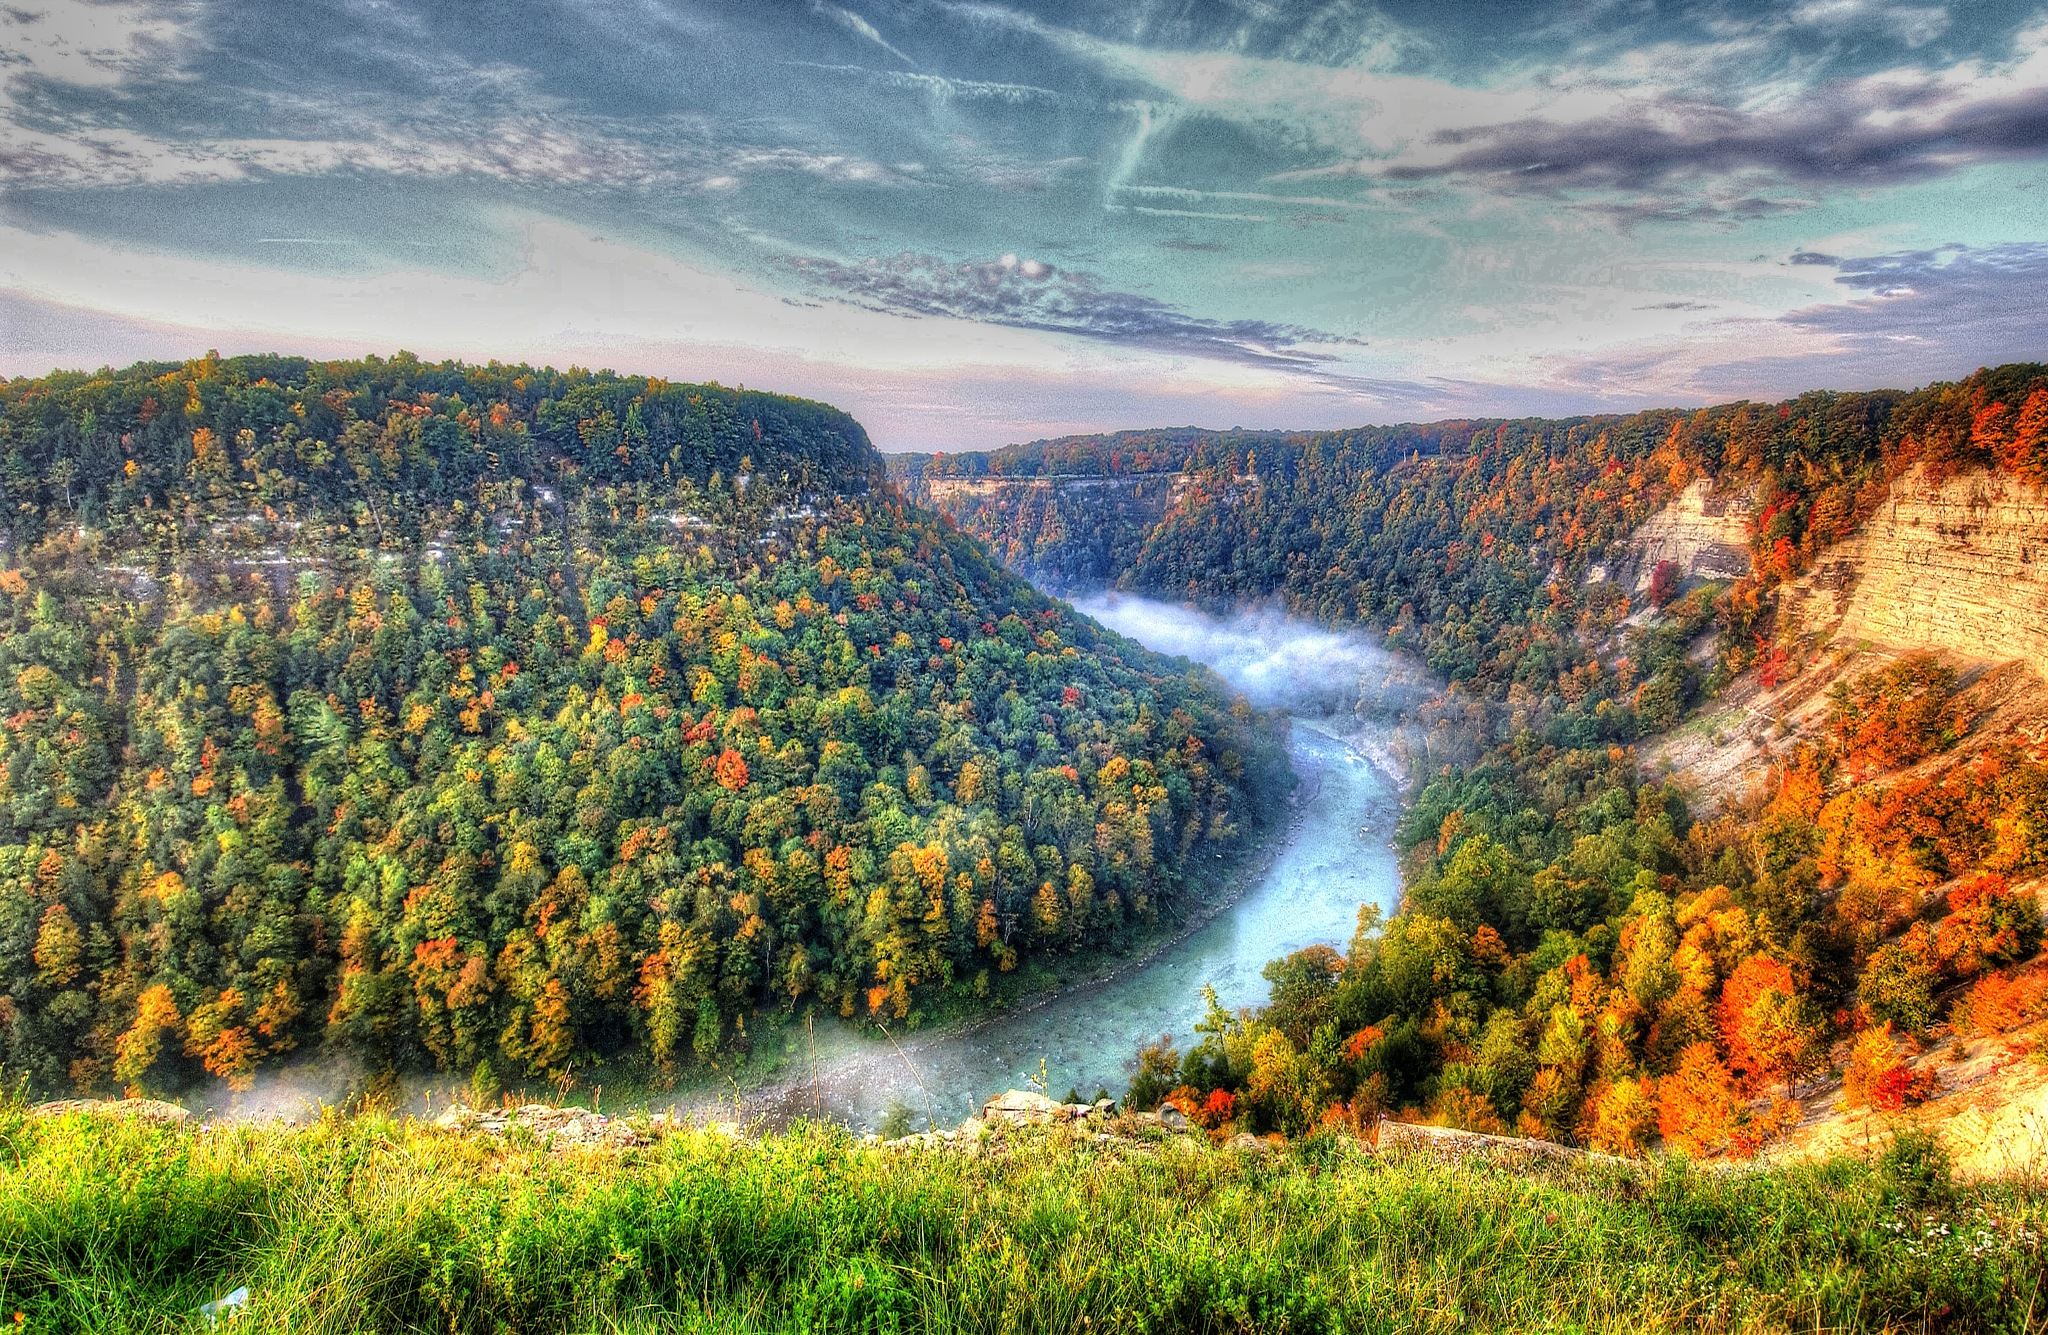 Letchworth State Park, NY by Dr Martin Wenzel